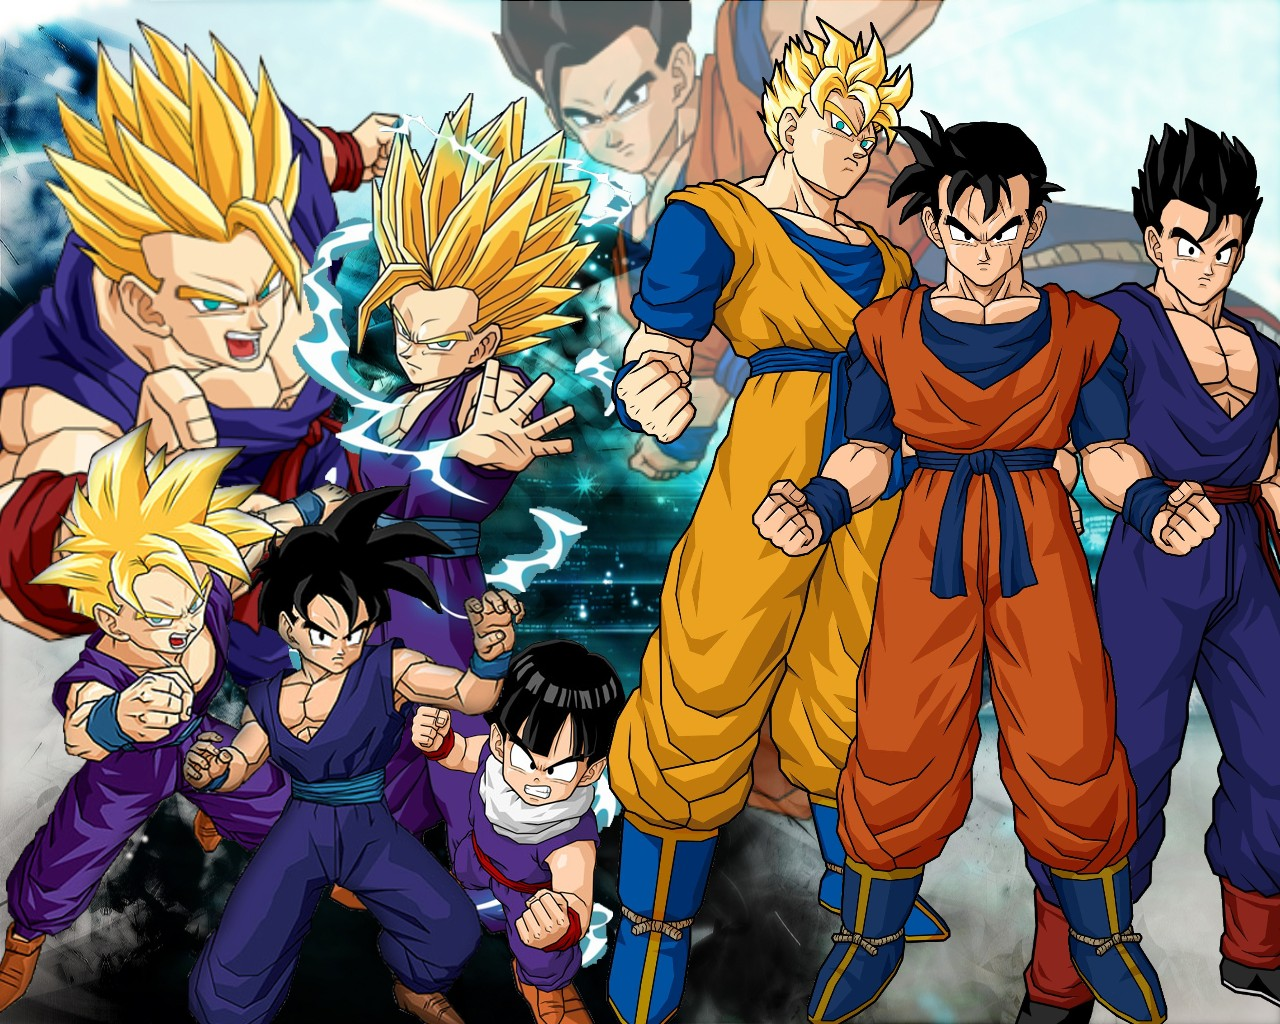 Download Free Wallpapers Dragon Ball Z Wallpapers